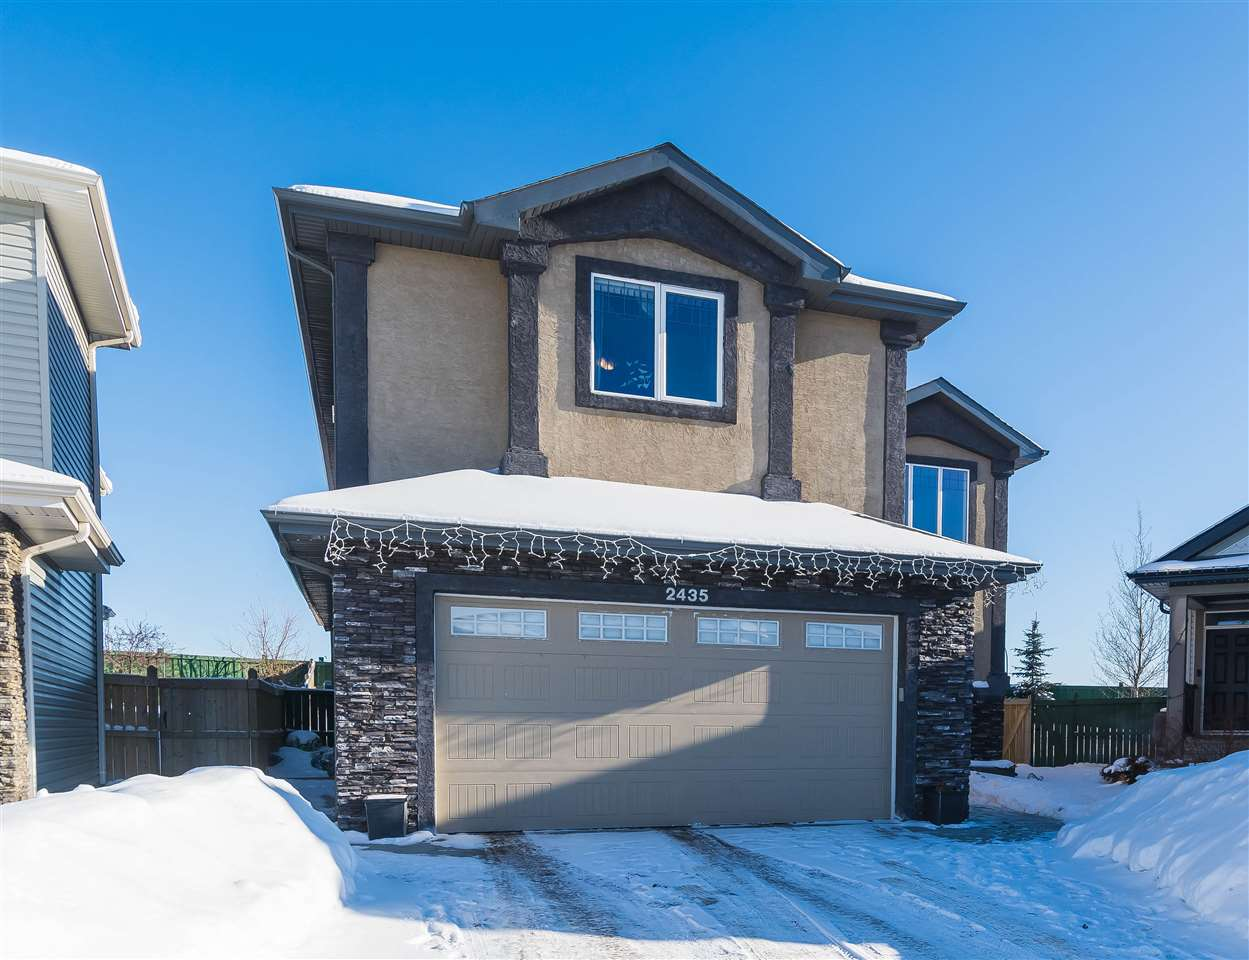 MLS® listing #E4145137 for sale located at 2435 HAGEN Way